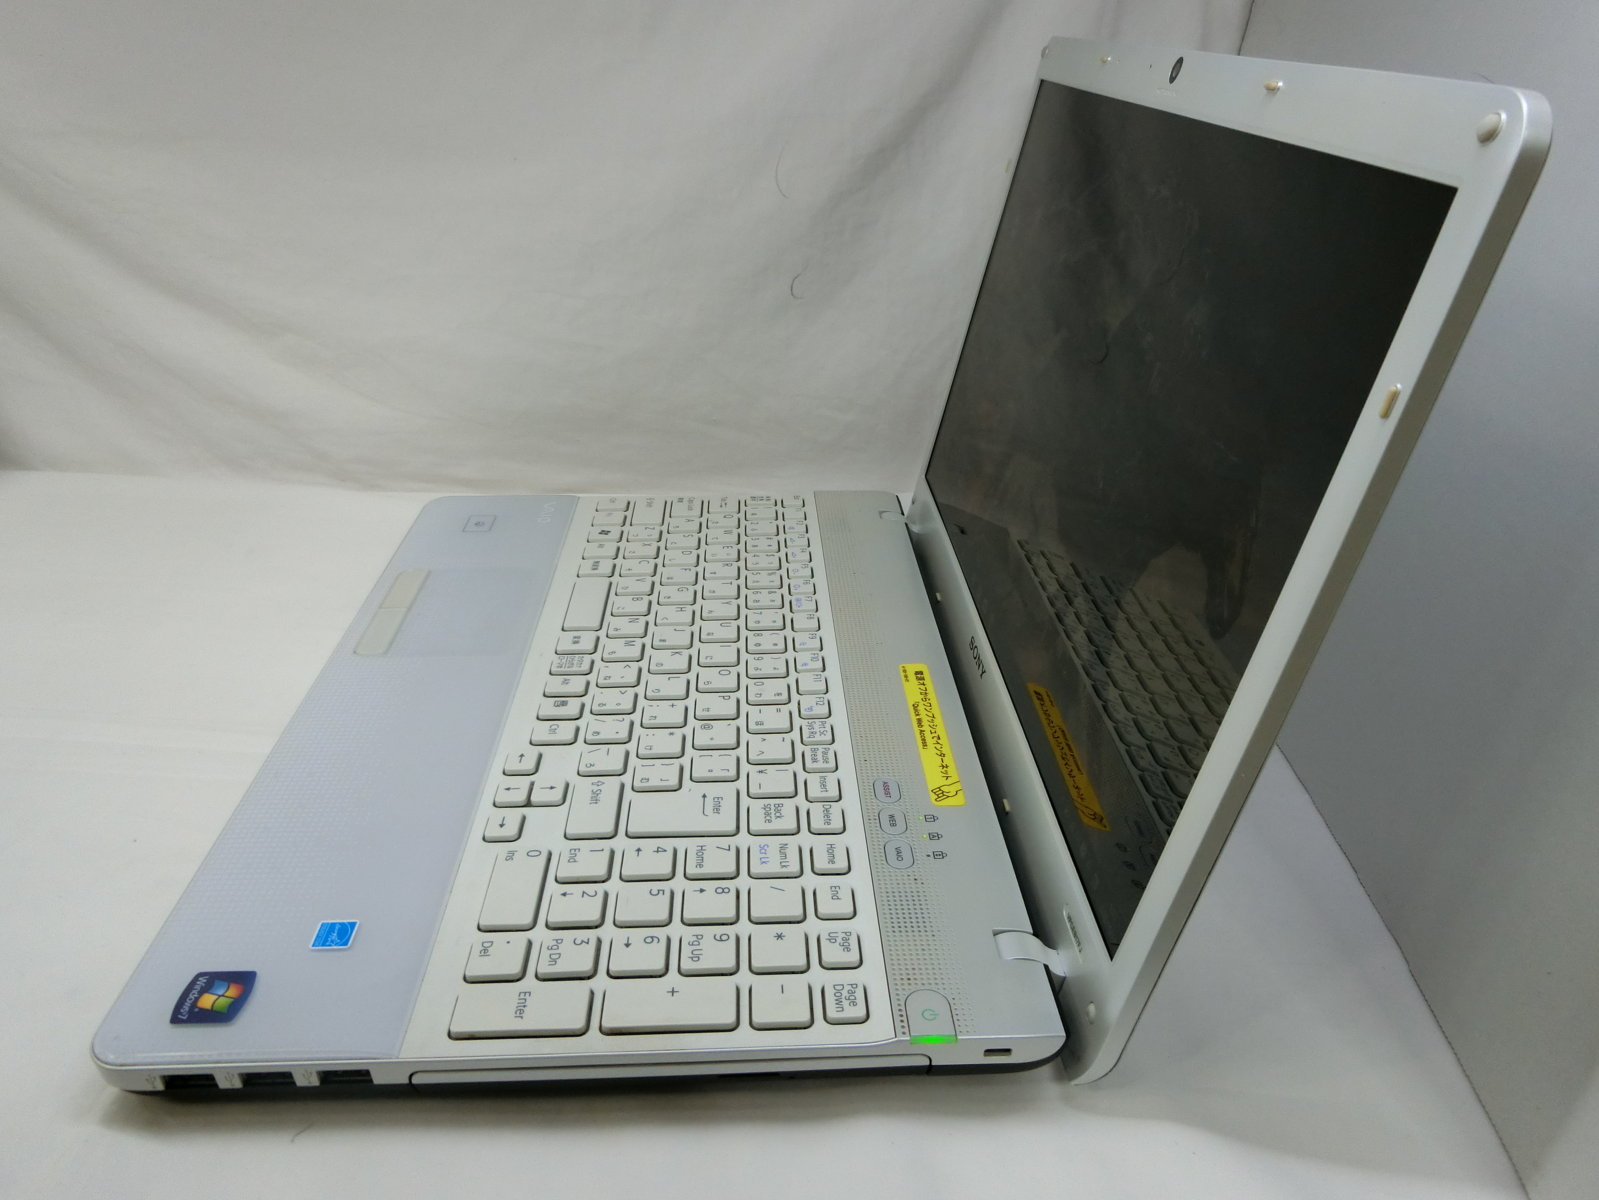 "SONY VAIO 71311N 15.6"" CORE I5 / M460 / 2.53GHZ / 4G / SSD 128G. MS:T1011 4156"